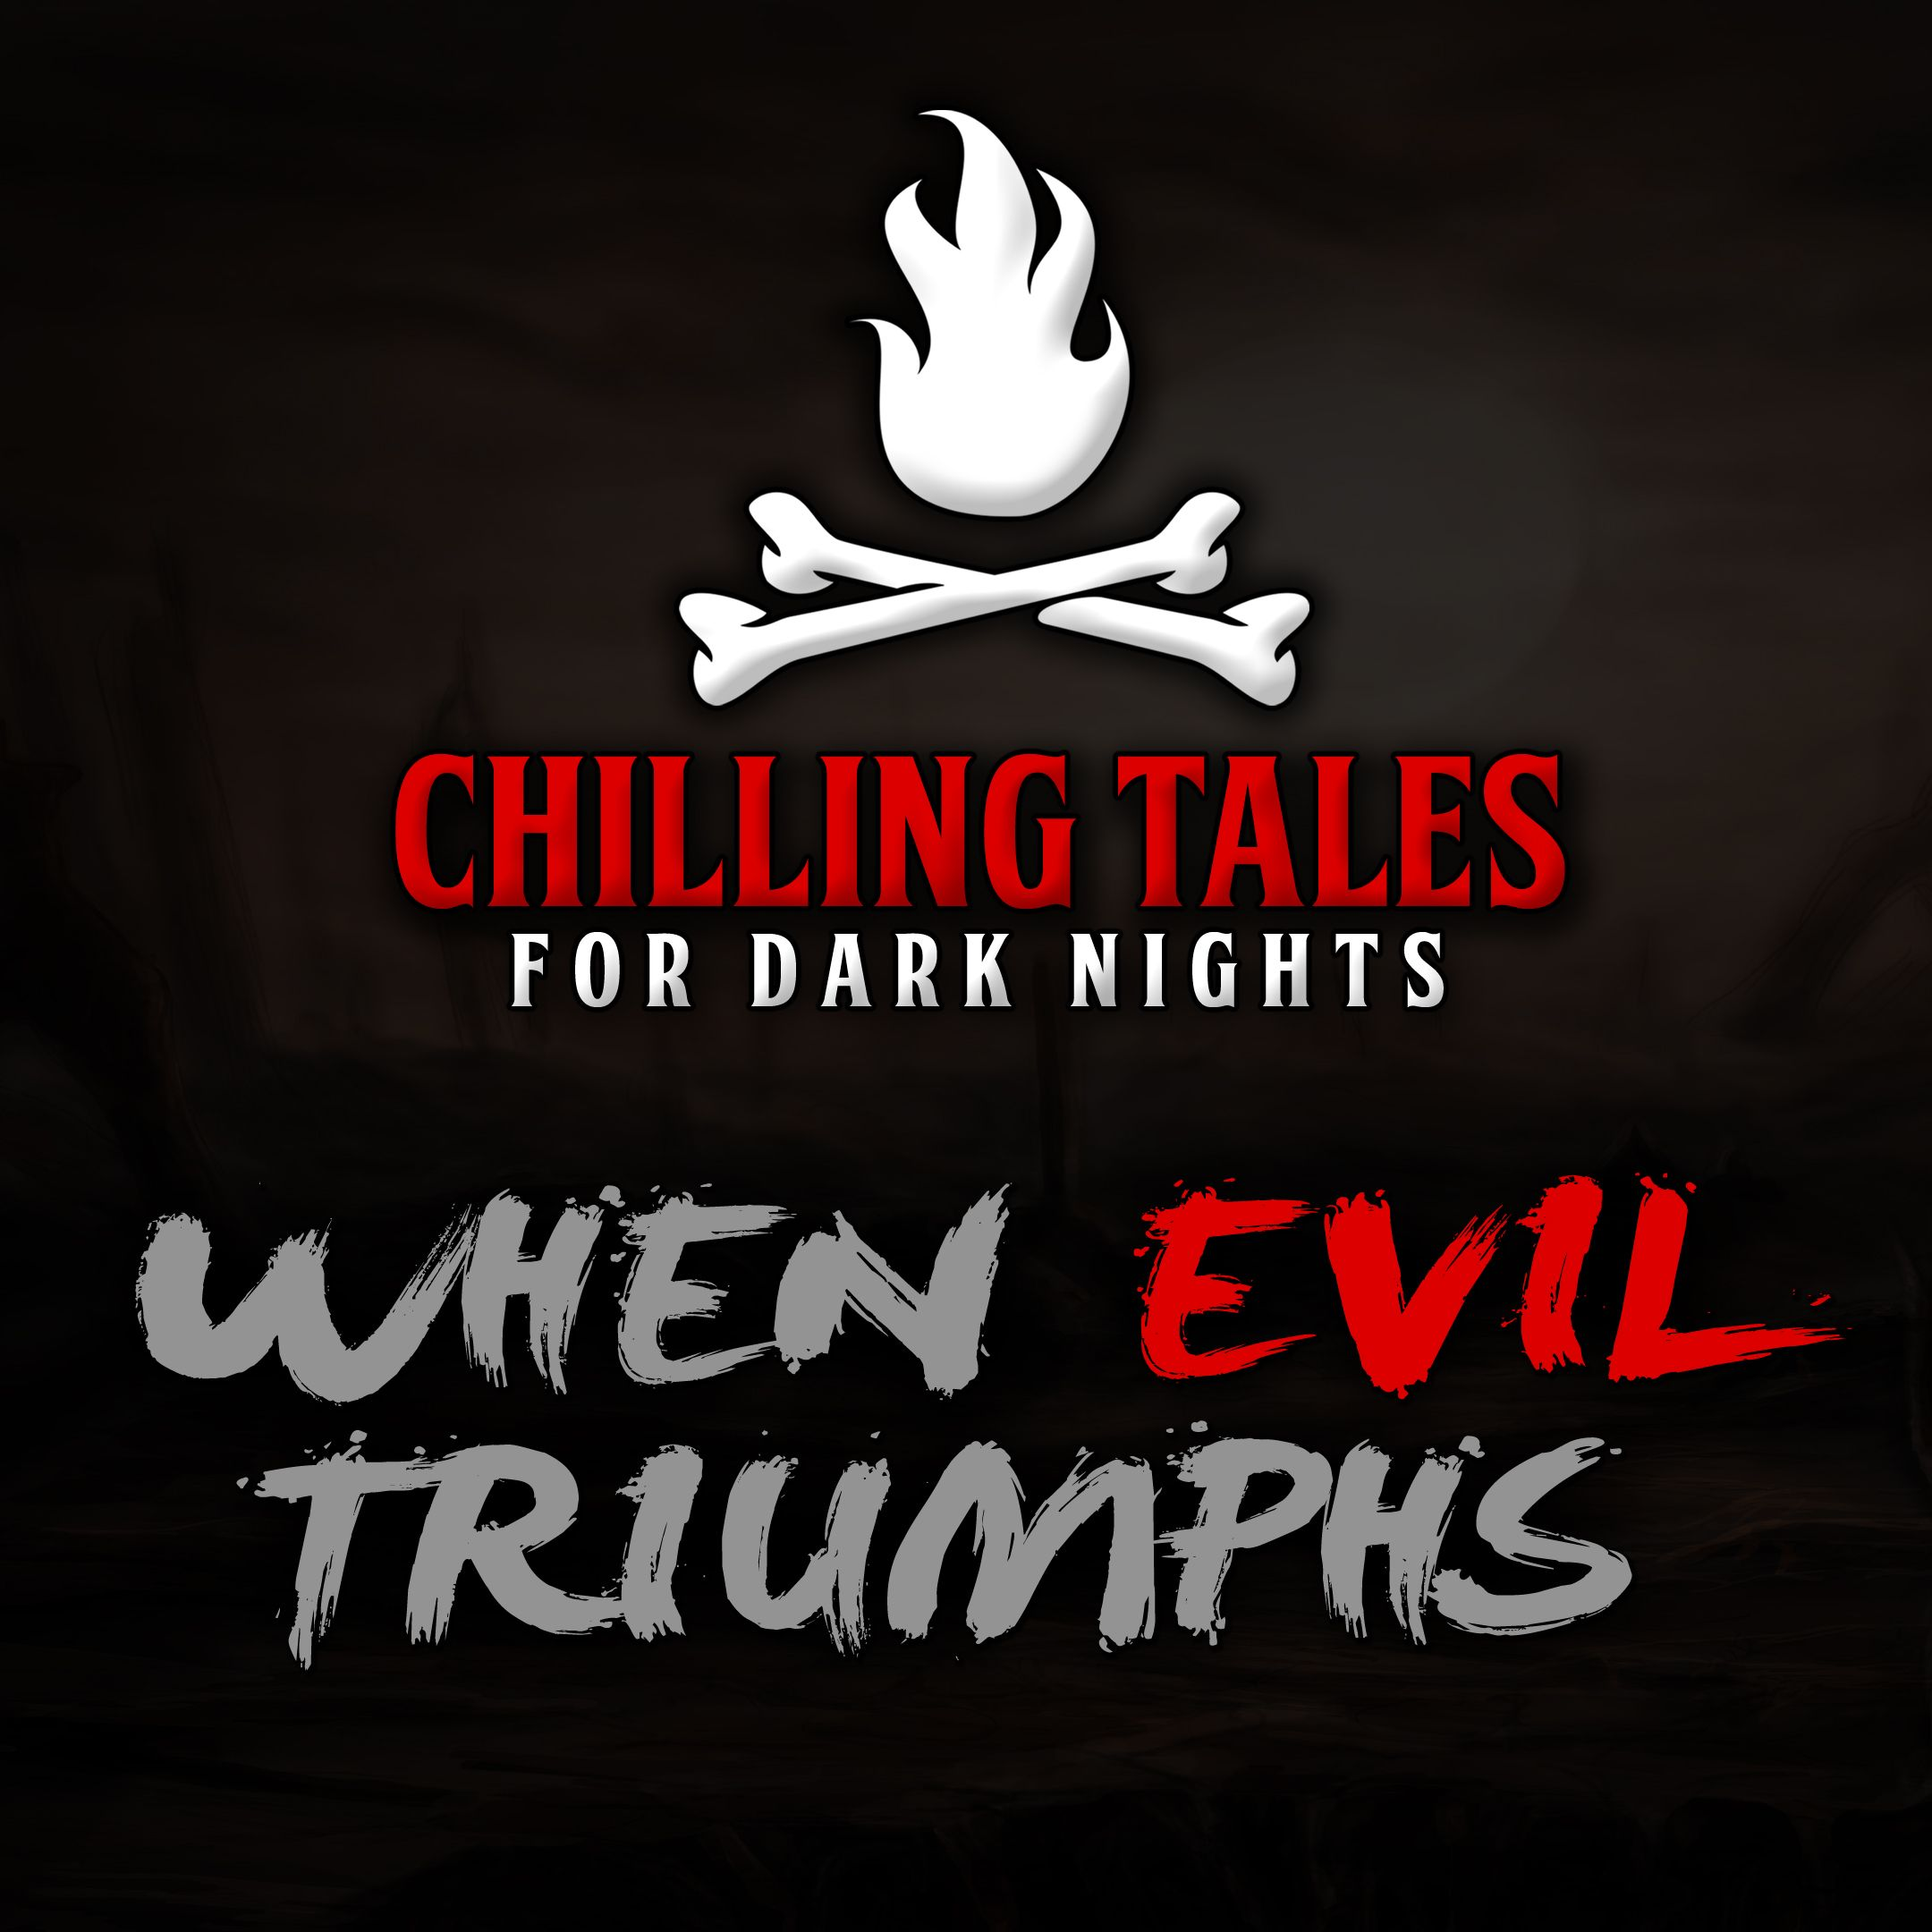 74: When Evil Triumphs – Chilling Tales for Dark Nights